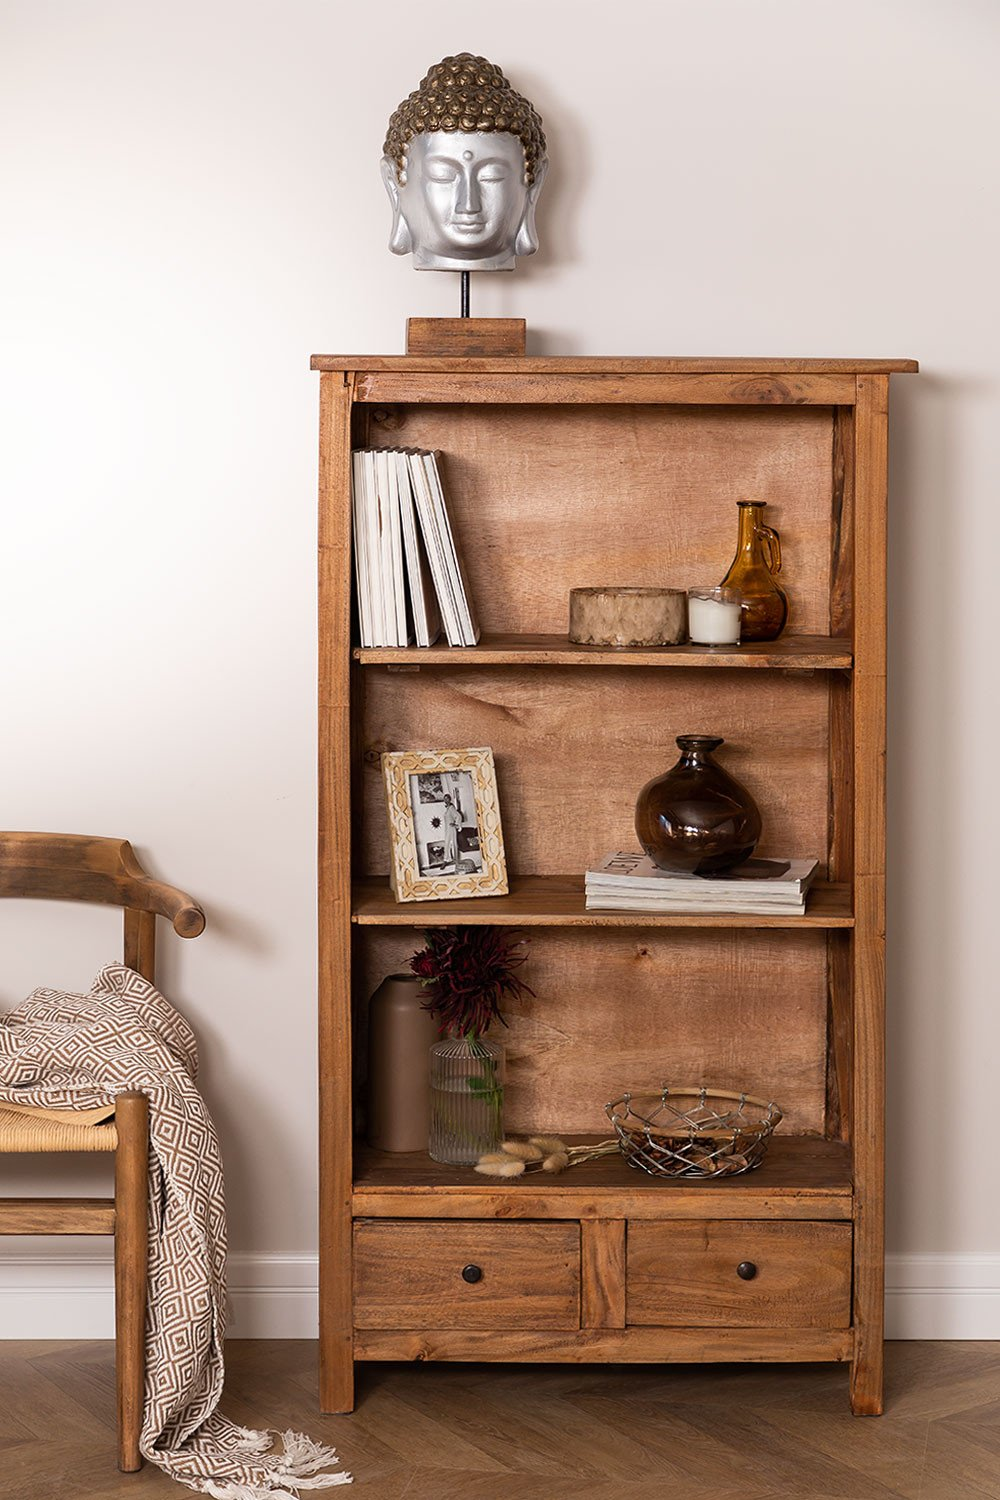 Set of 2 Recycled Wood Bookcases Jara, gallery image 1